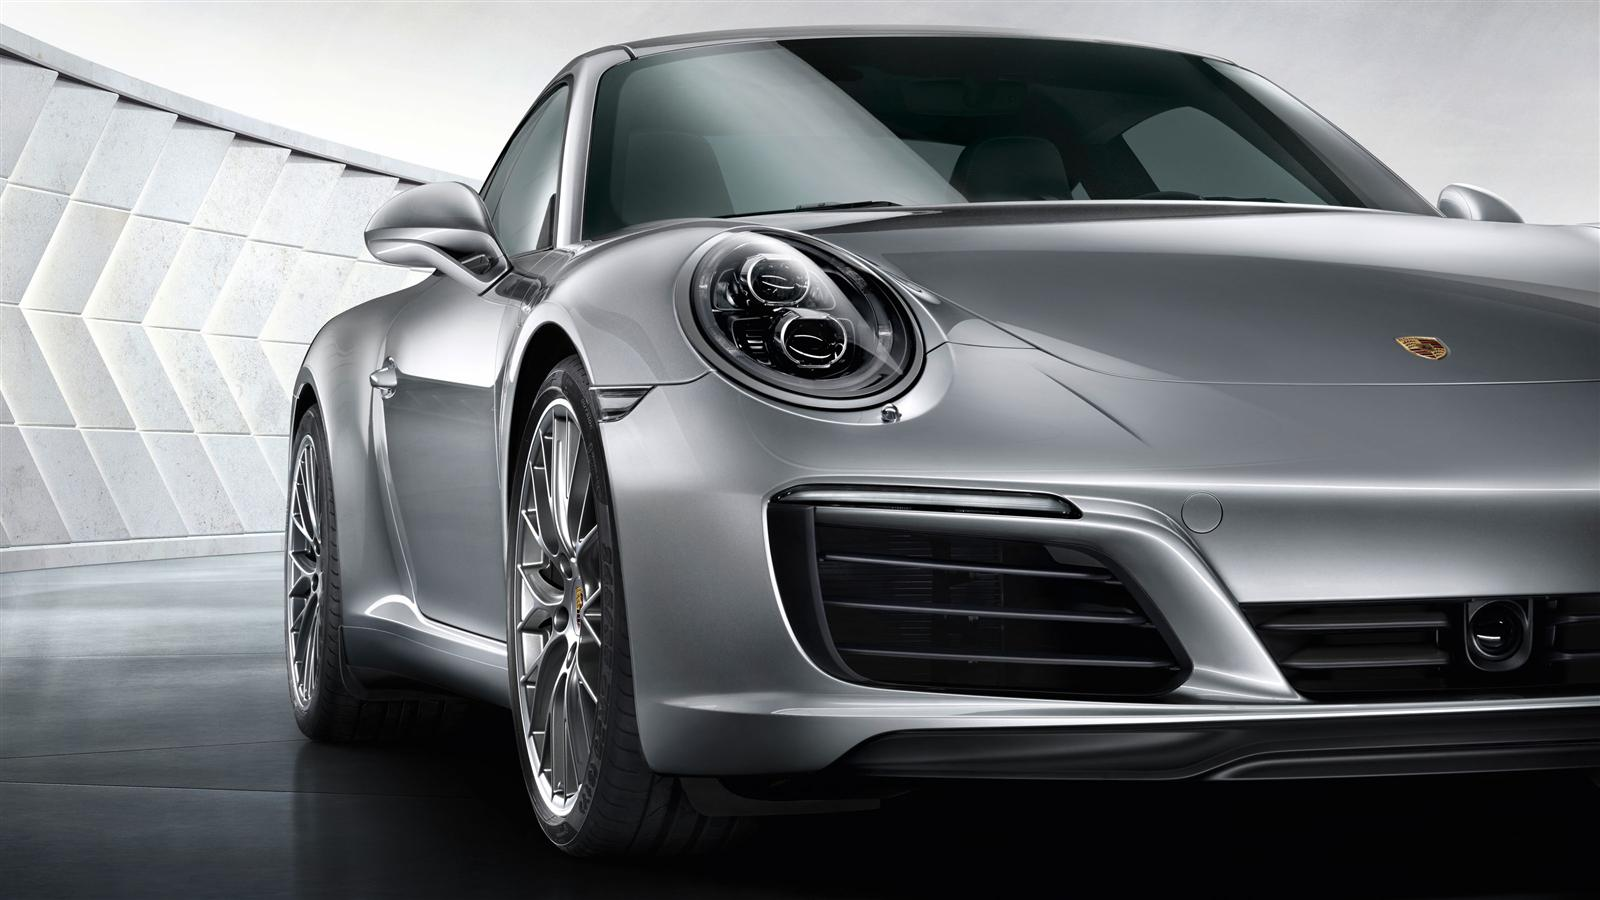 2018 porsche 911 carrera s prices specifications in uae. Black Bedroom Furniture Sets. Home Design Ideas